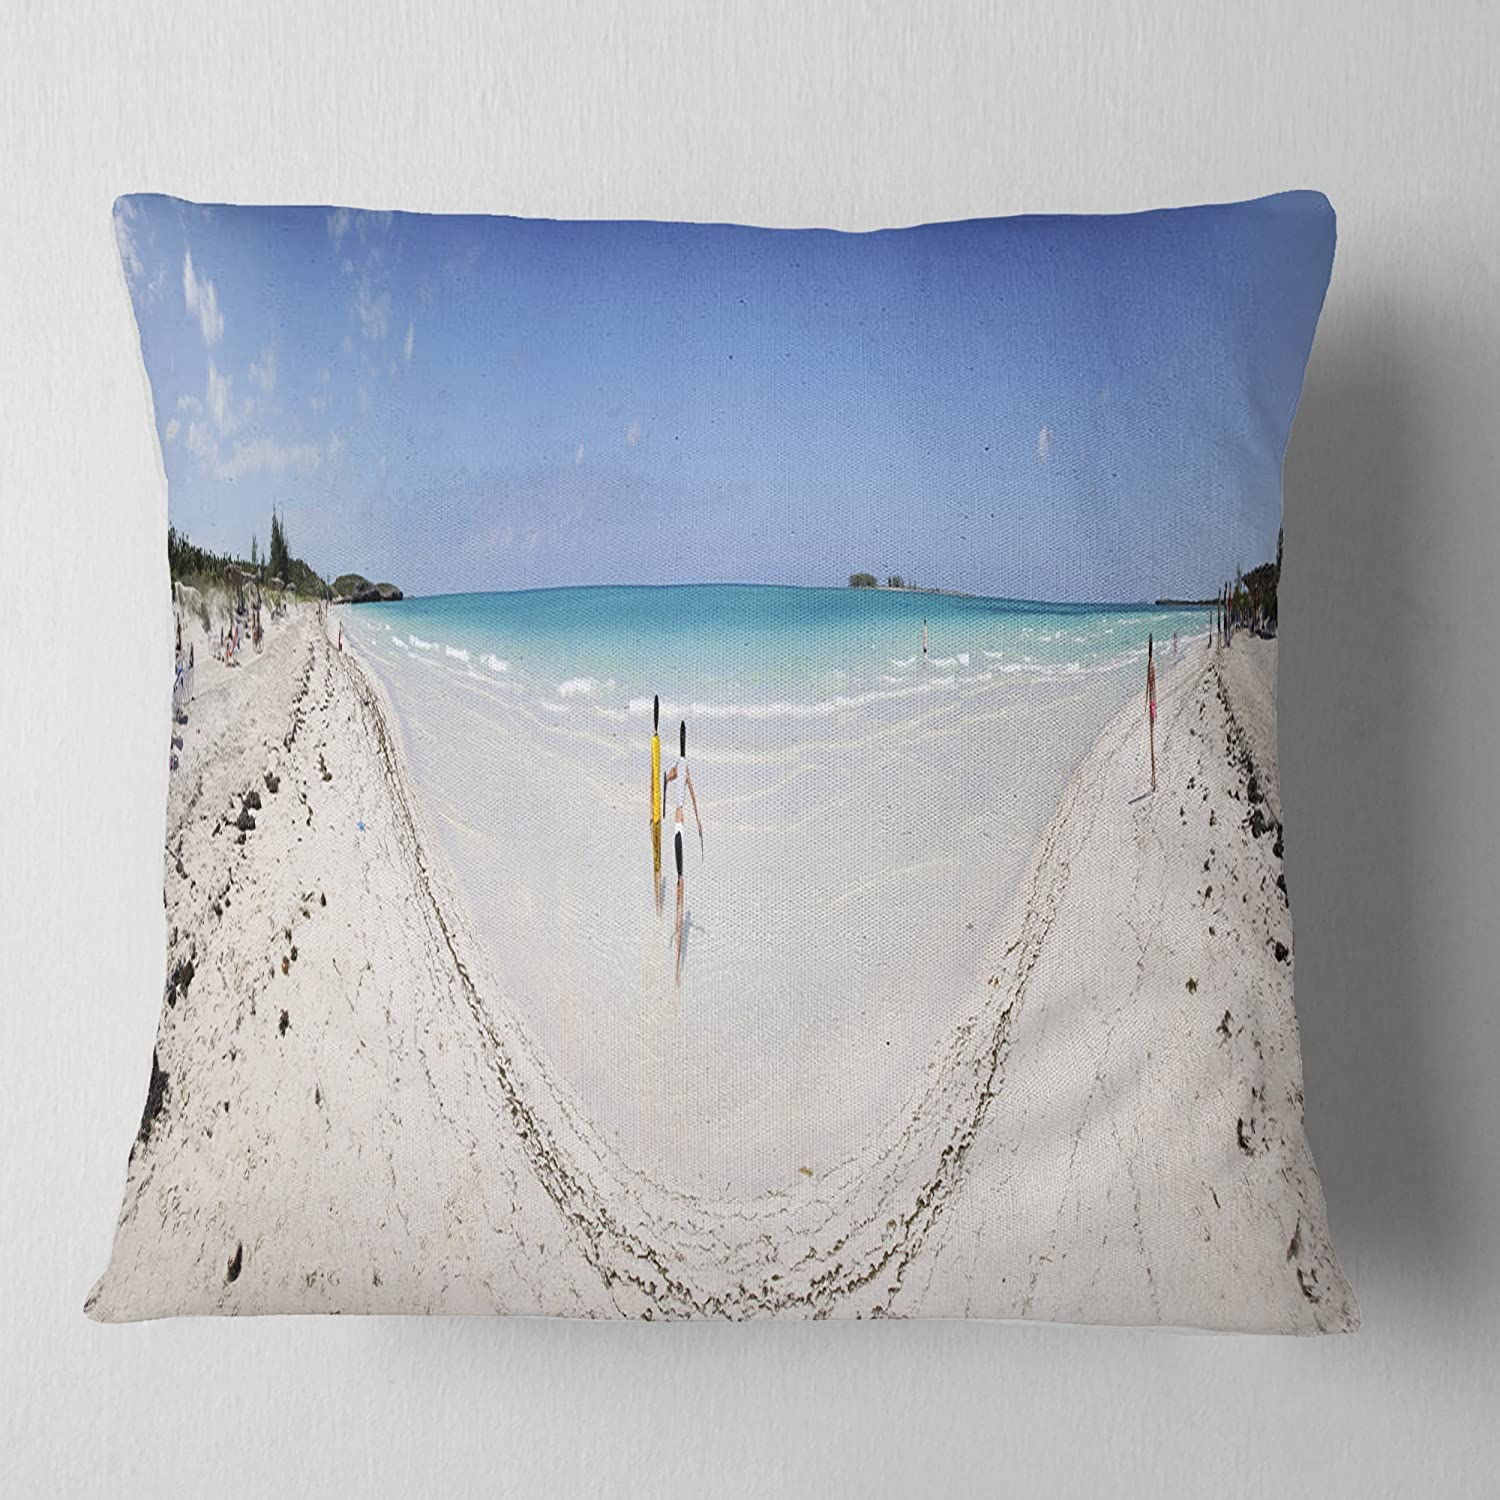 Designart CU11451-26-26 Cayo Coco Tropical Beach Panorama' Modern Seascape Cushion Cover for Living Room, Sofa Throw Pillow 26 in. x 26 in. in, Insert Printed On Both Side